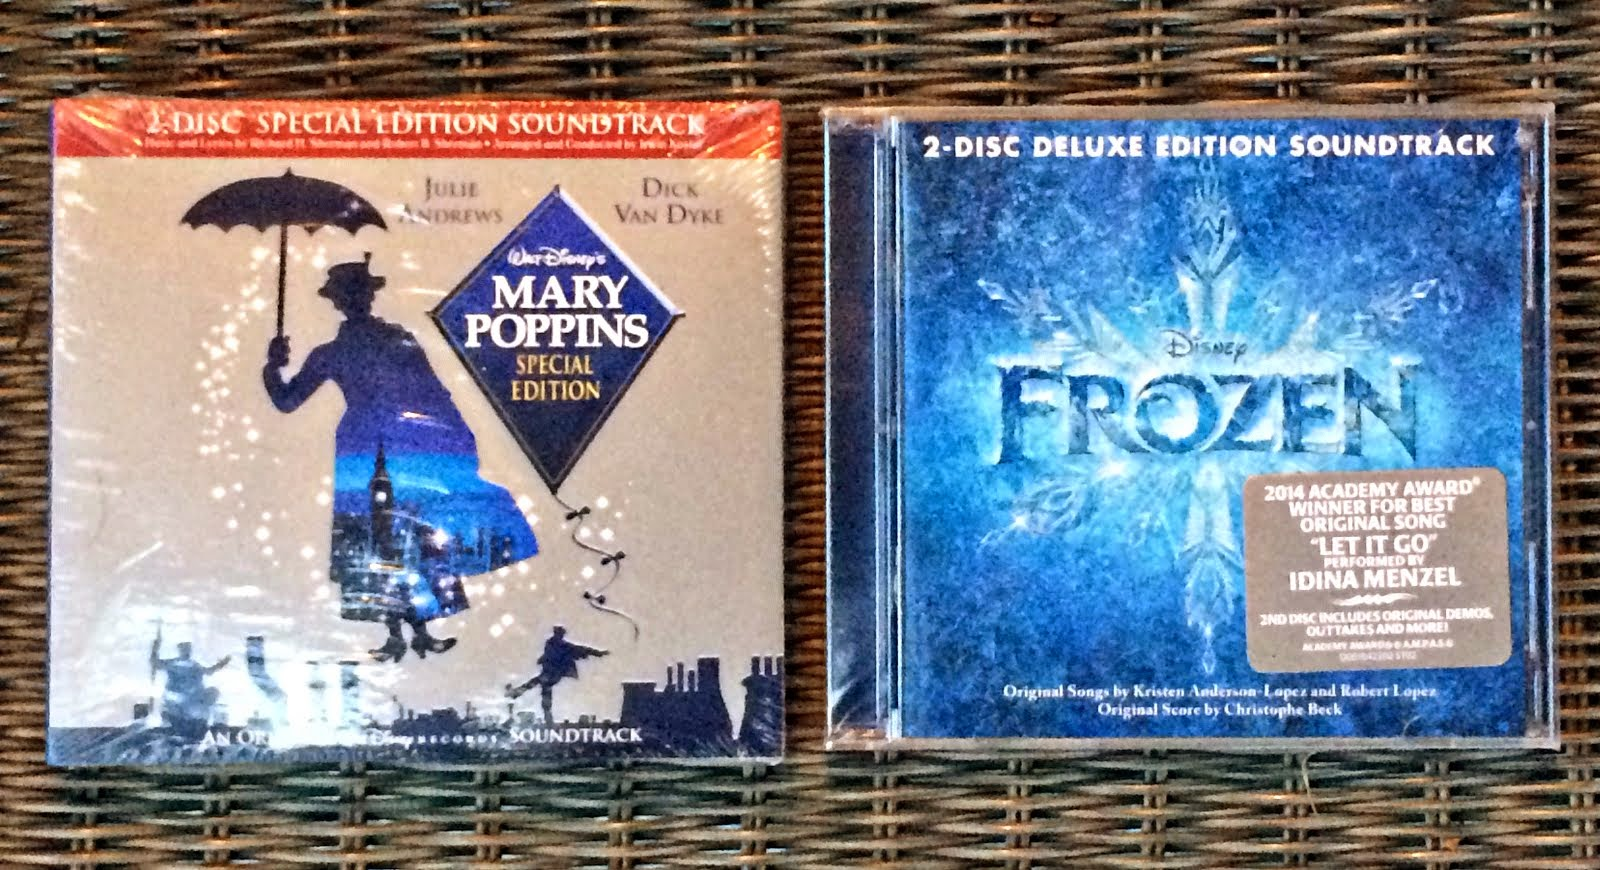 Enter to Win Frozen or Mary Poppins Sountrack